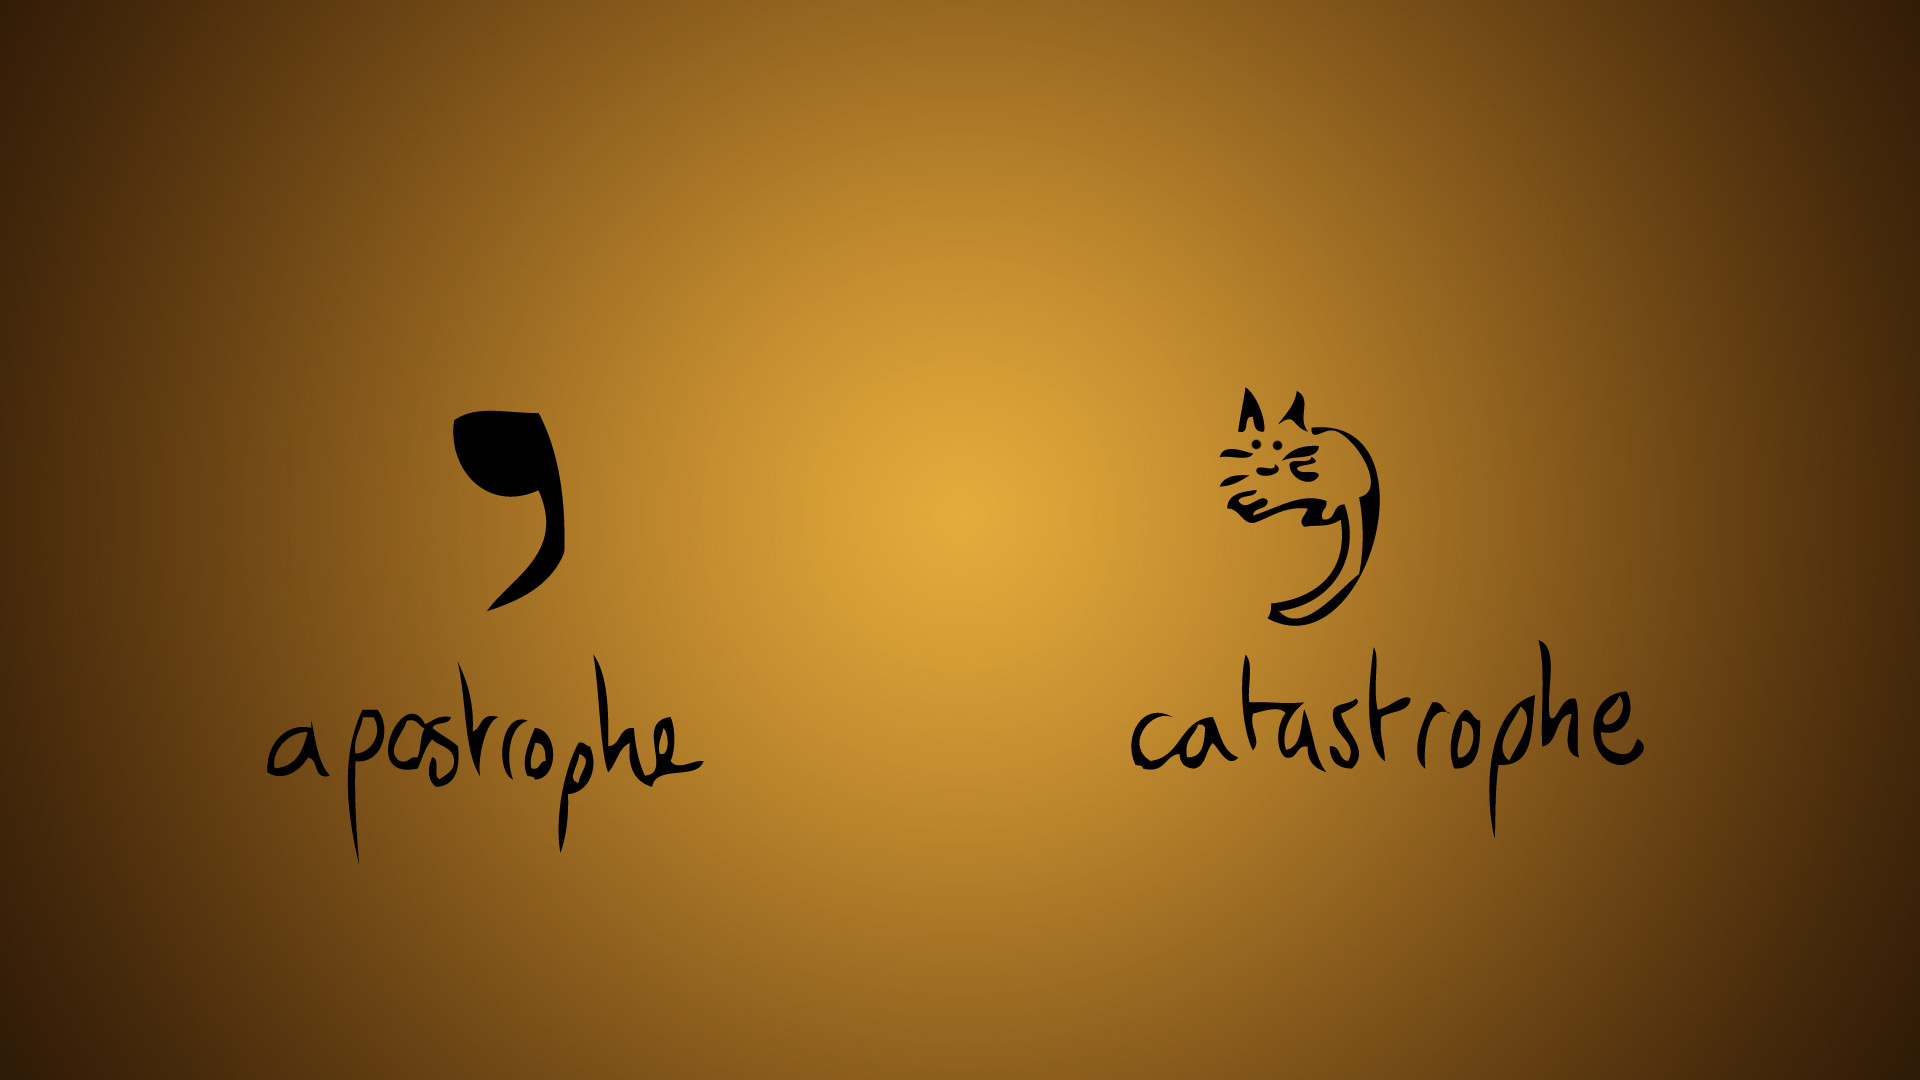 Apostrophe And Catastrophe Wallpapers HD Desktop And